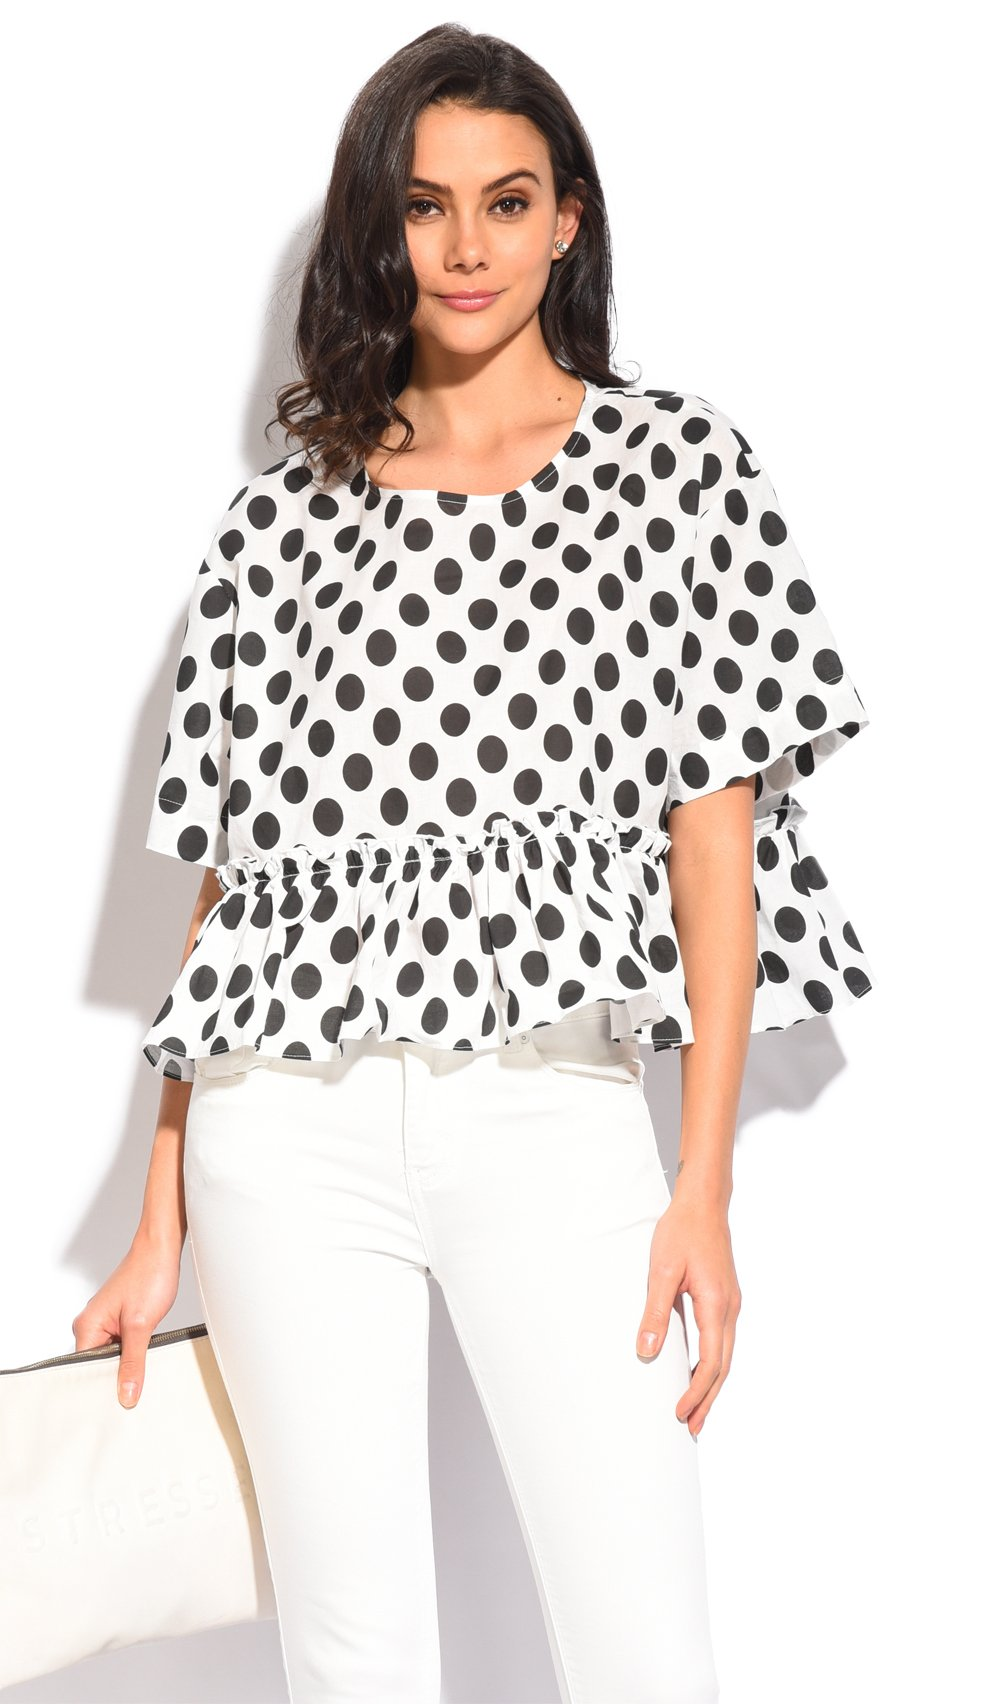 RUFFLED TOP WITH ROUND COLLAR AND POLKA DOTS PRINT